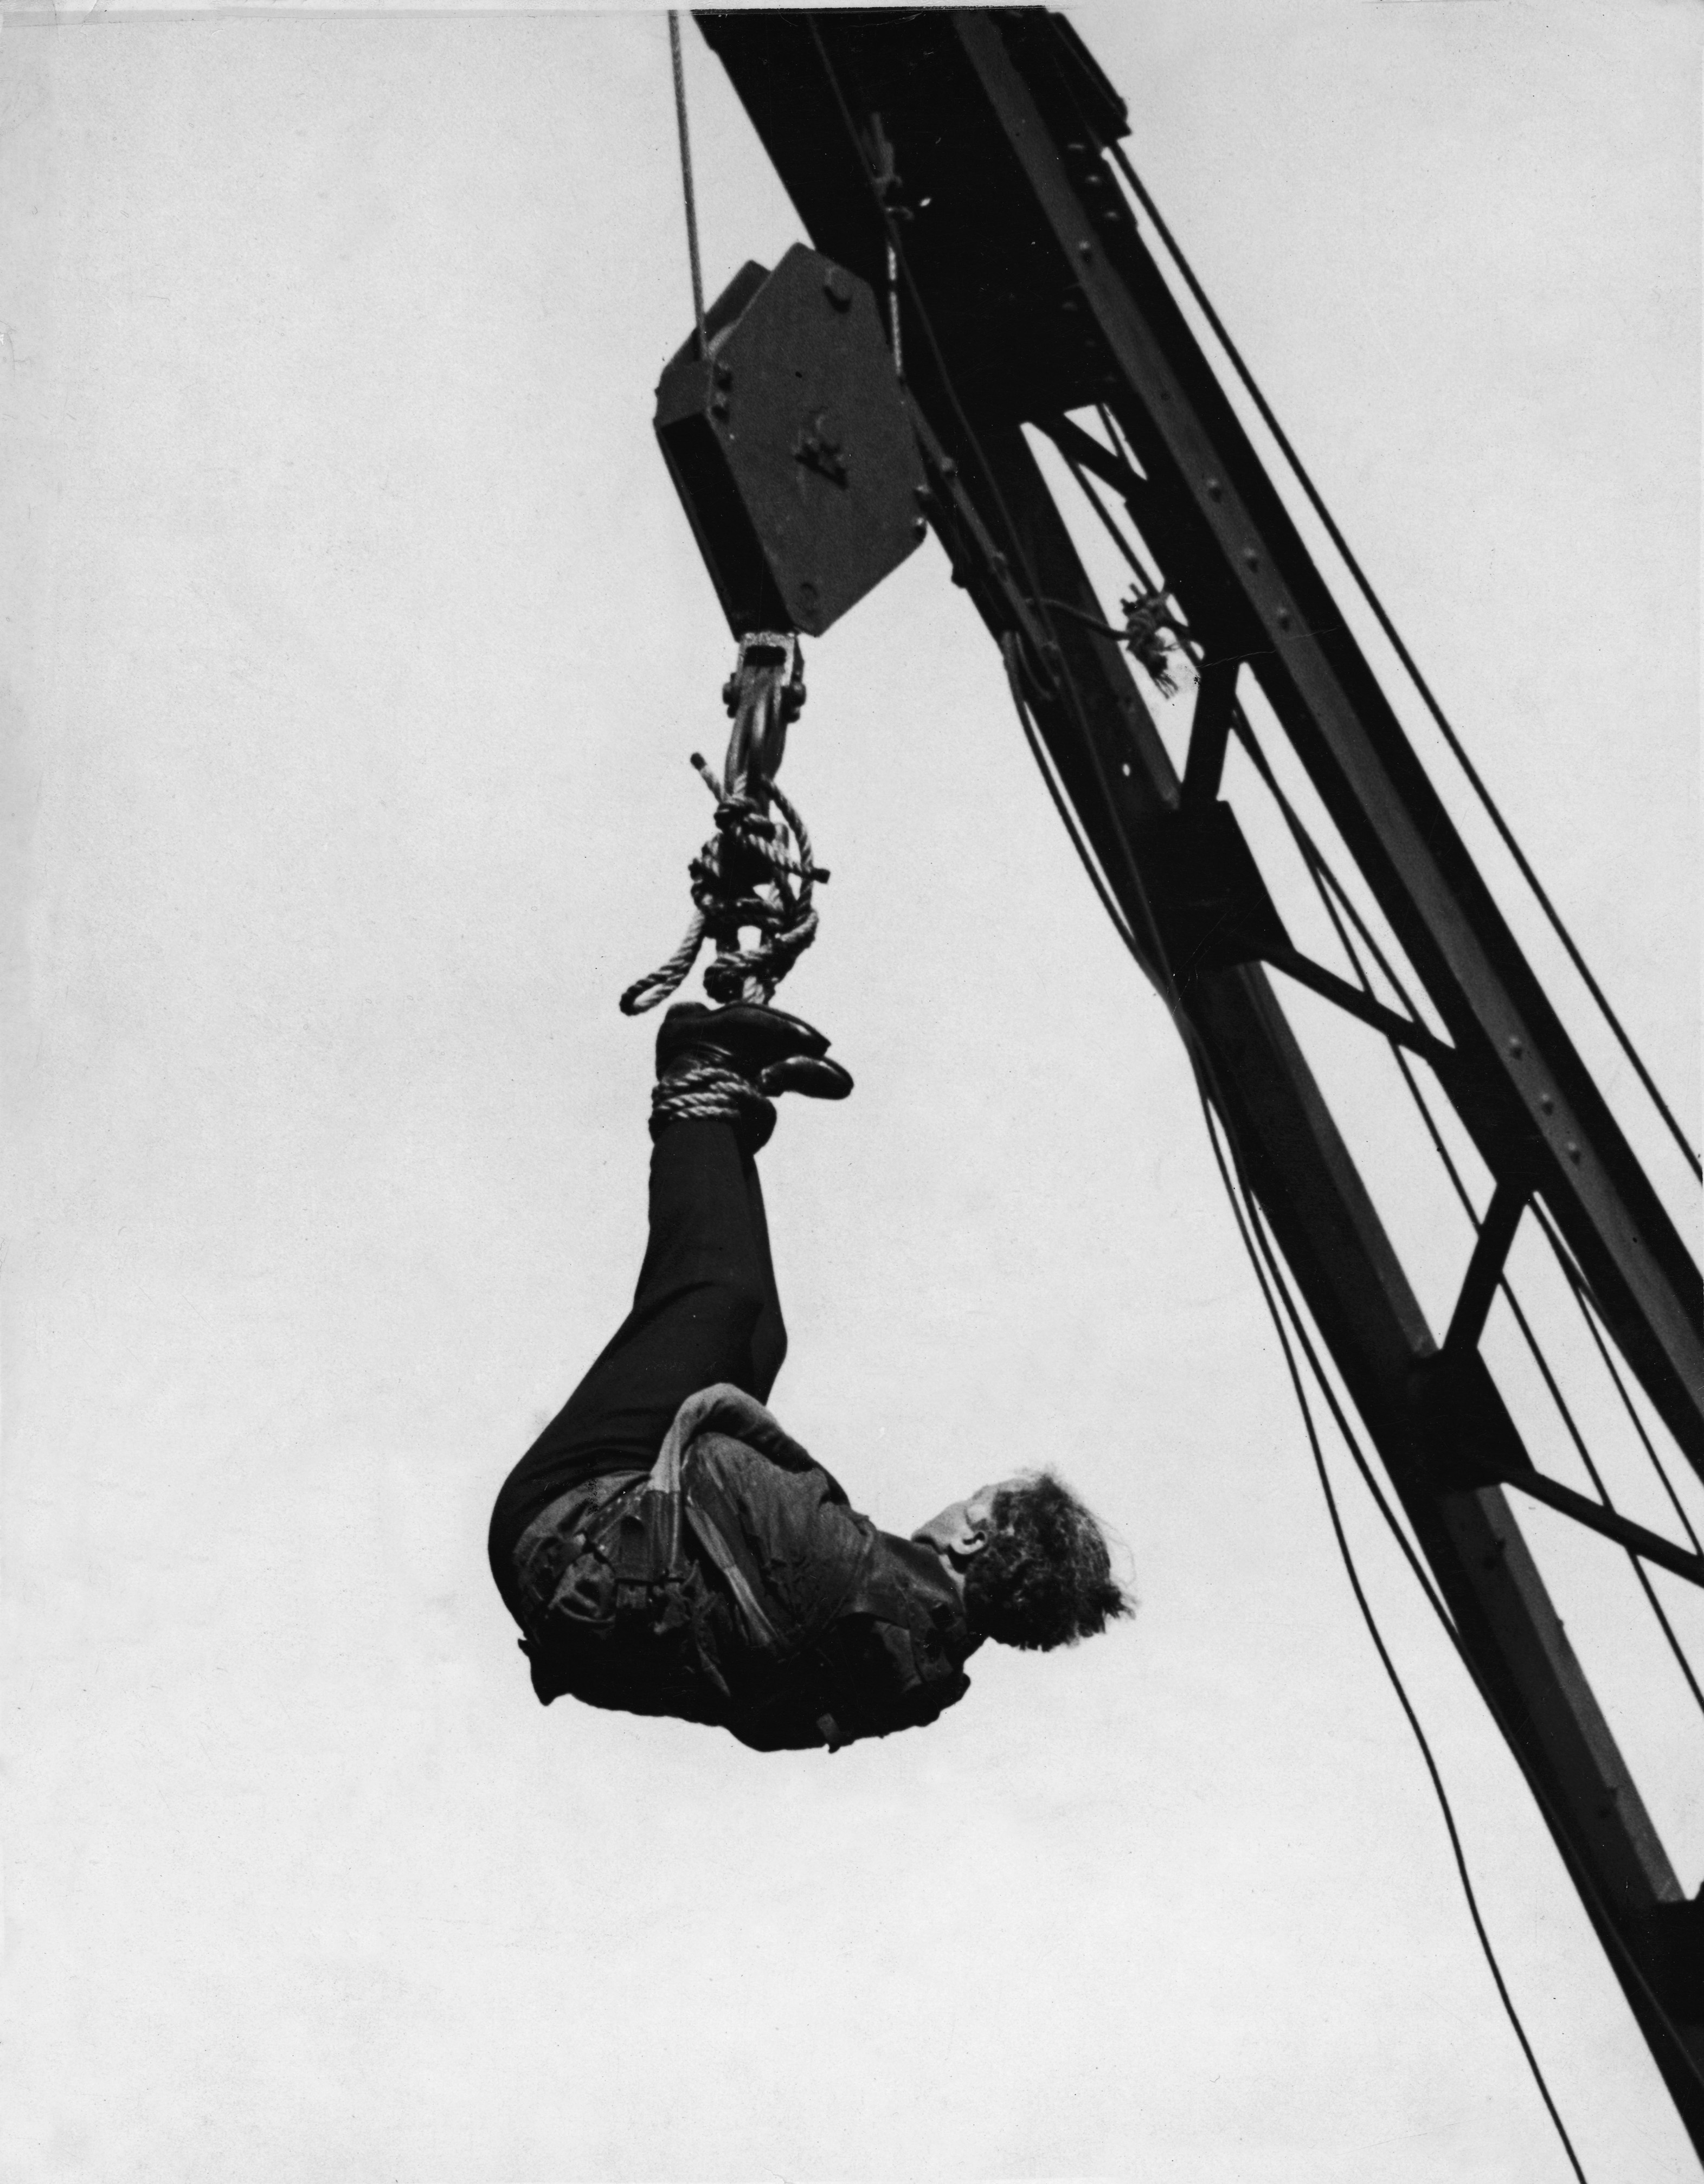 Houdini wears a straitjacket and hangs from a crane during one of his escape acts over Broadway and 46th Street, Manhattan, New York.